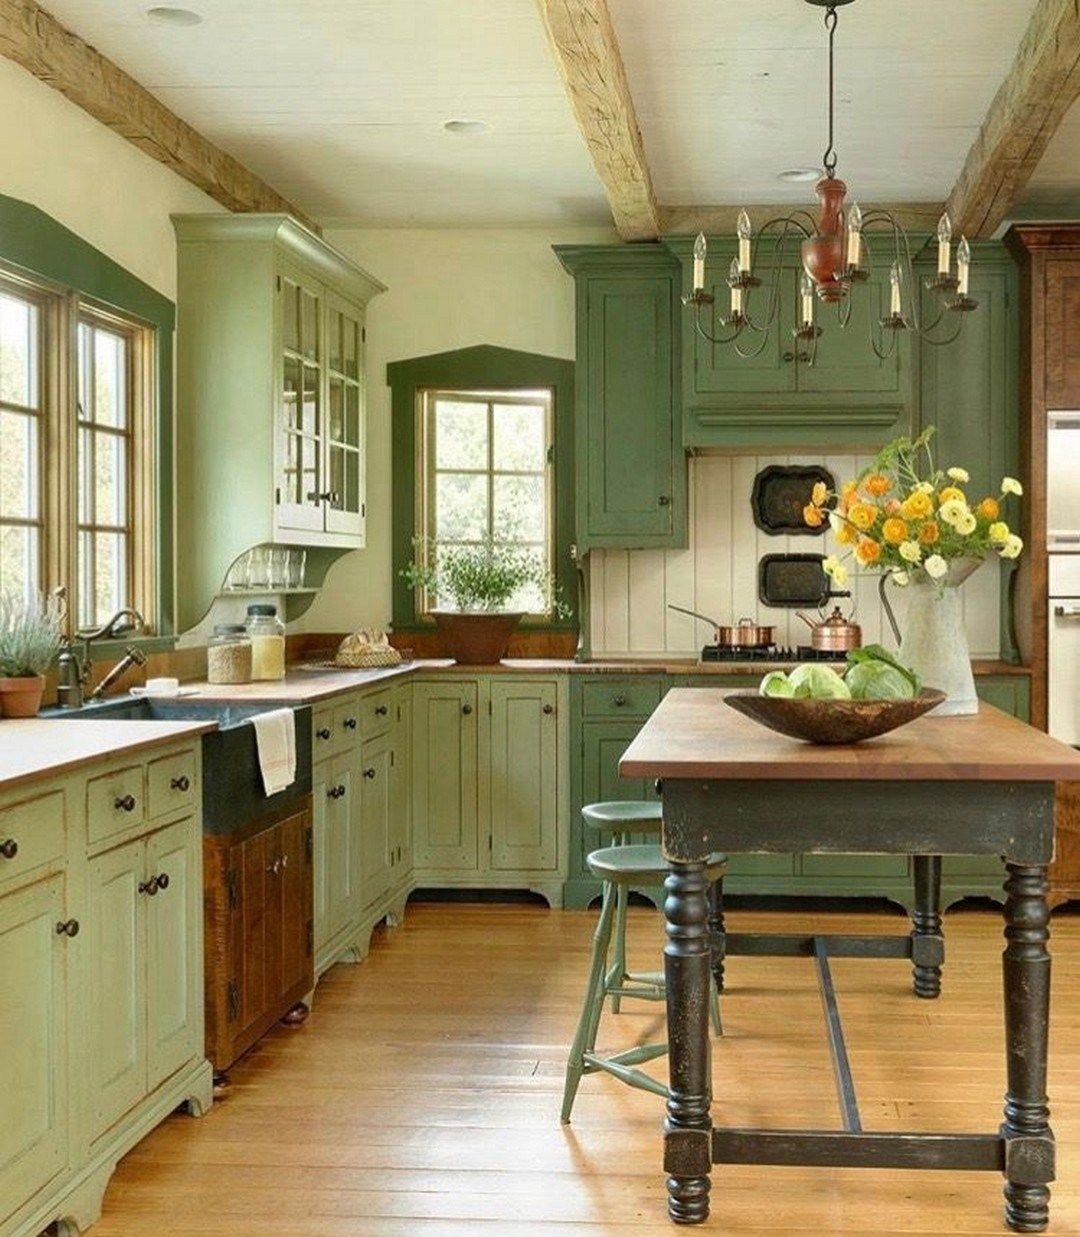 31 Popular Green Kitchen Cabinet Colors Ideas 11   Green ...